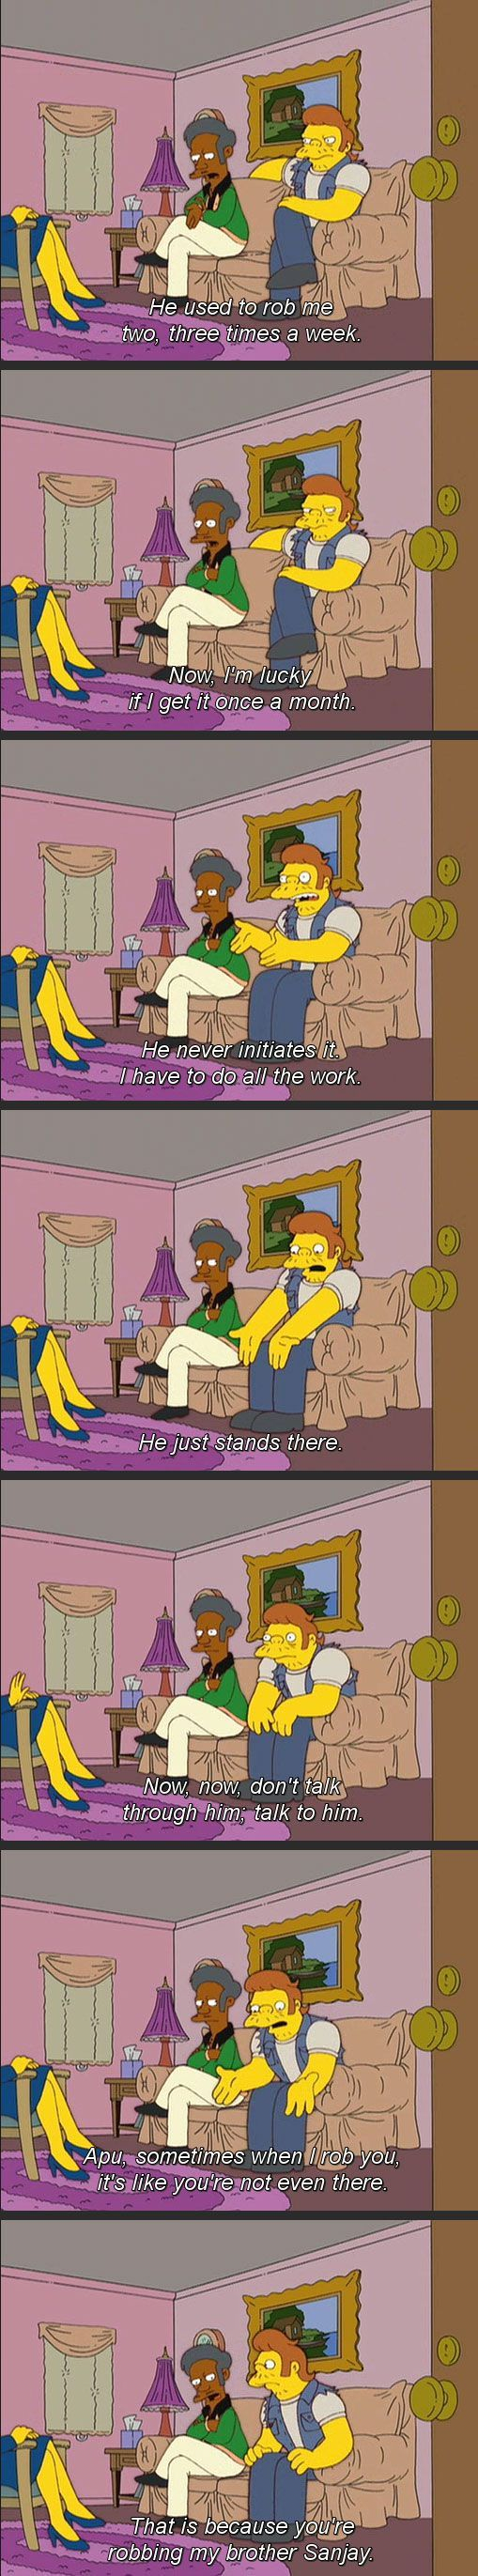 One of my favorite moments in The Simpsons  - funny pictures #funnypictures